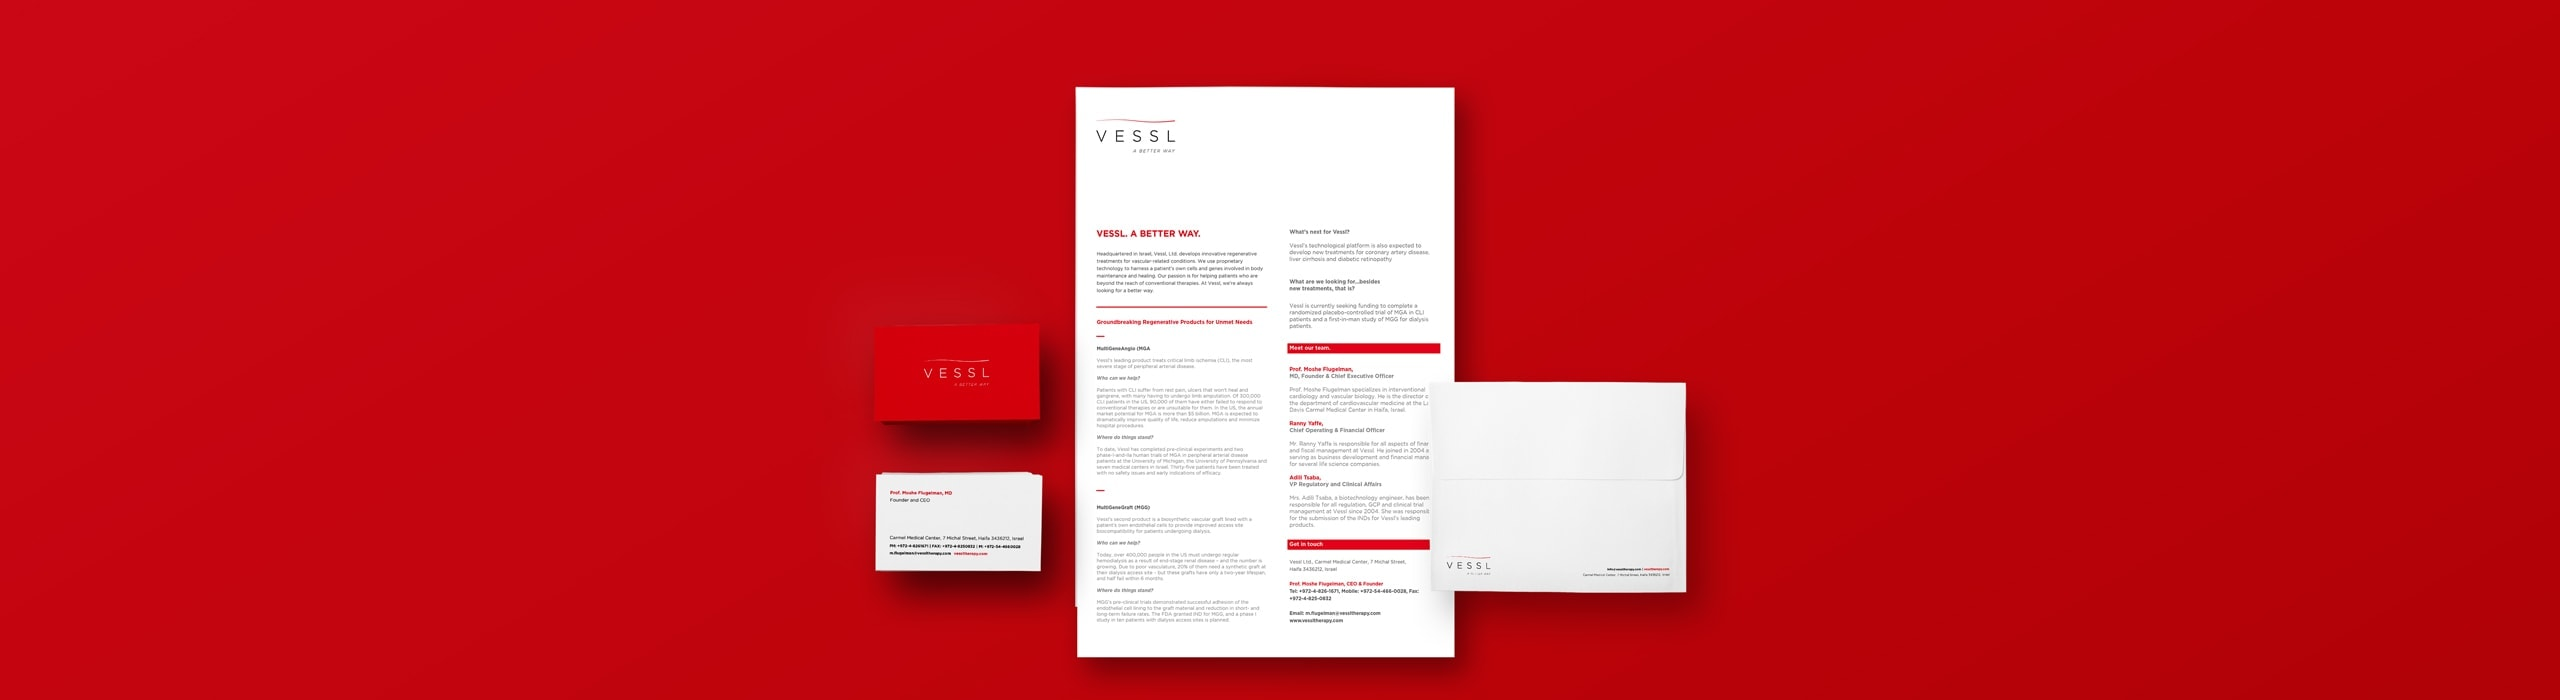 Vessl - natie-vessl-stationary - Natie Branding Agency